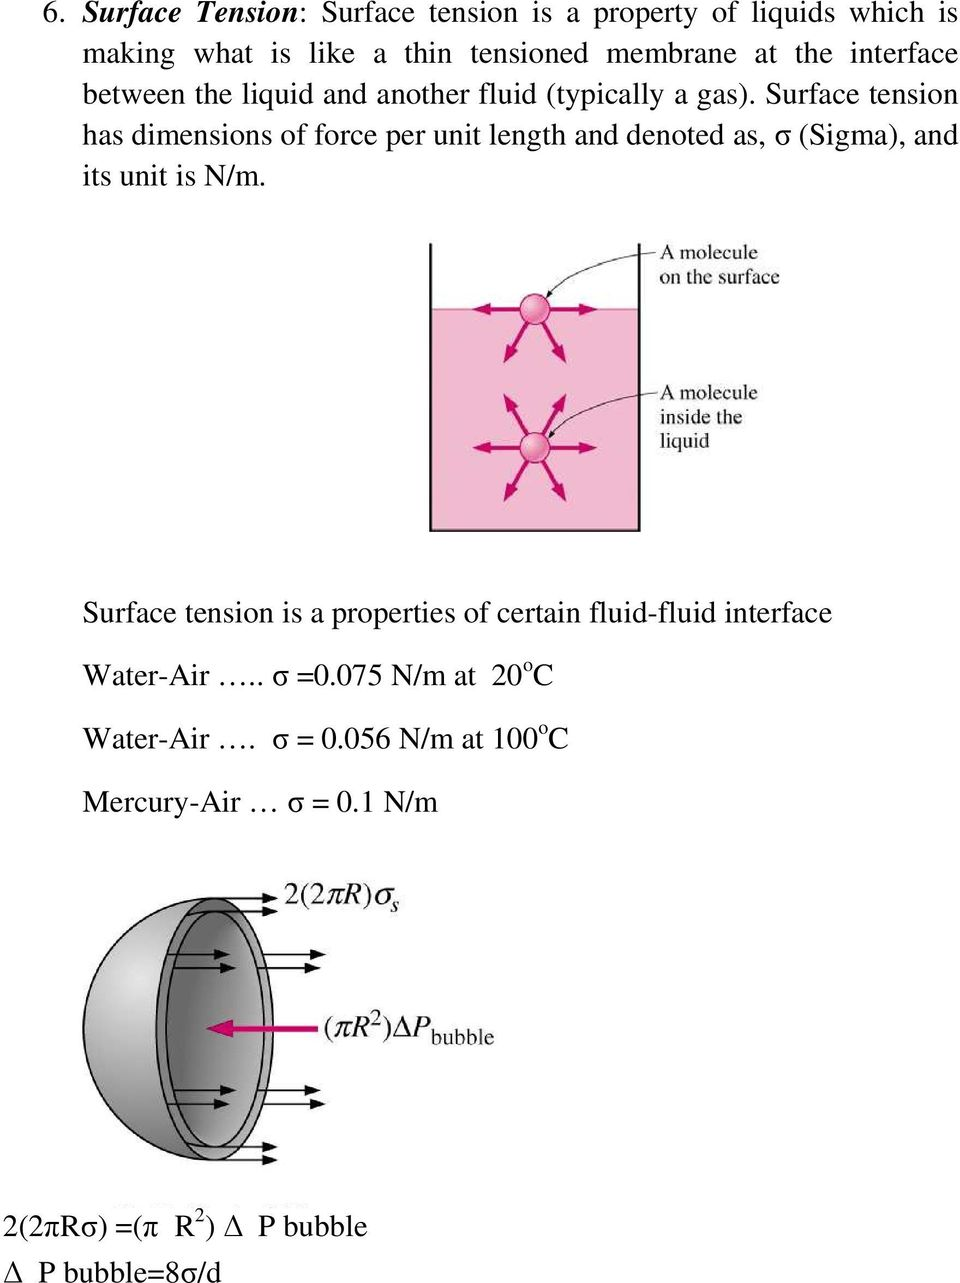 Surface tension has dimensions of force per unit length and denoted as, σ (Sigma), and its unit is N/m.